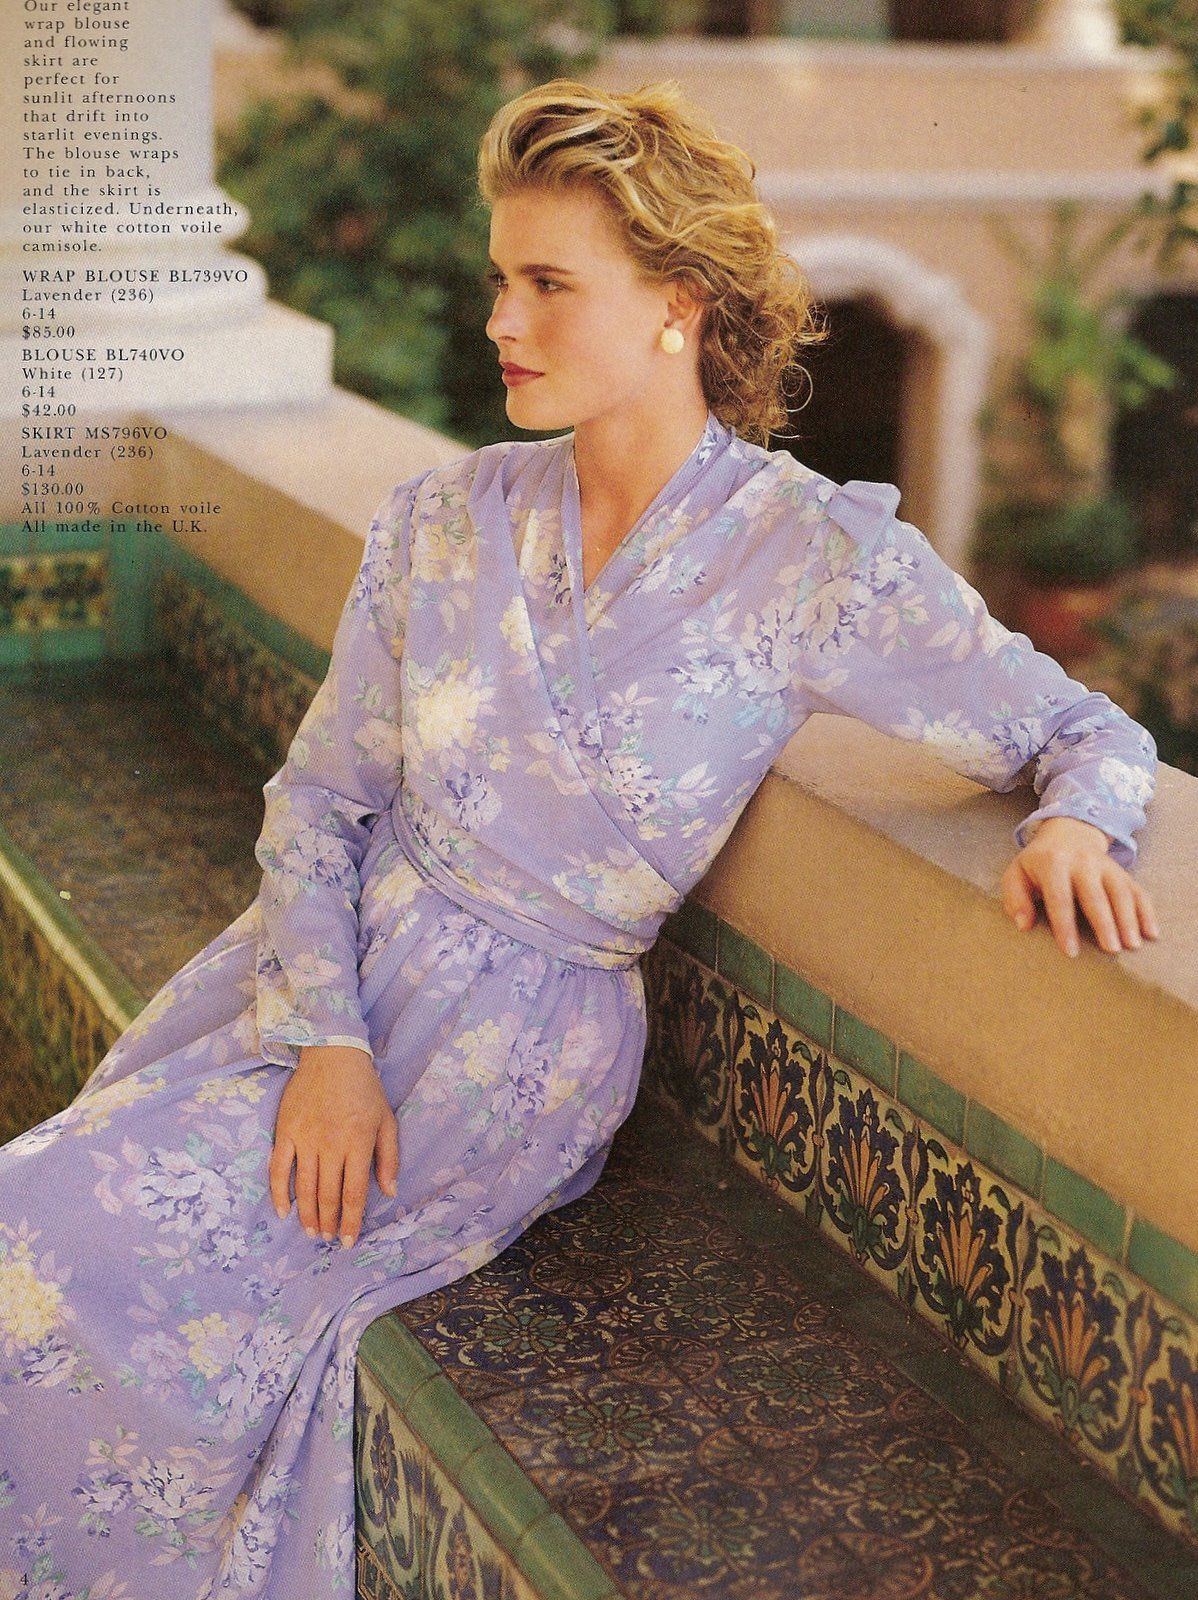 1990 laura ashley lavender long dress floral photo print ad magazine model things of beauty. Black Bedroom Furniture Sets. Home Design Ideas